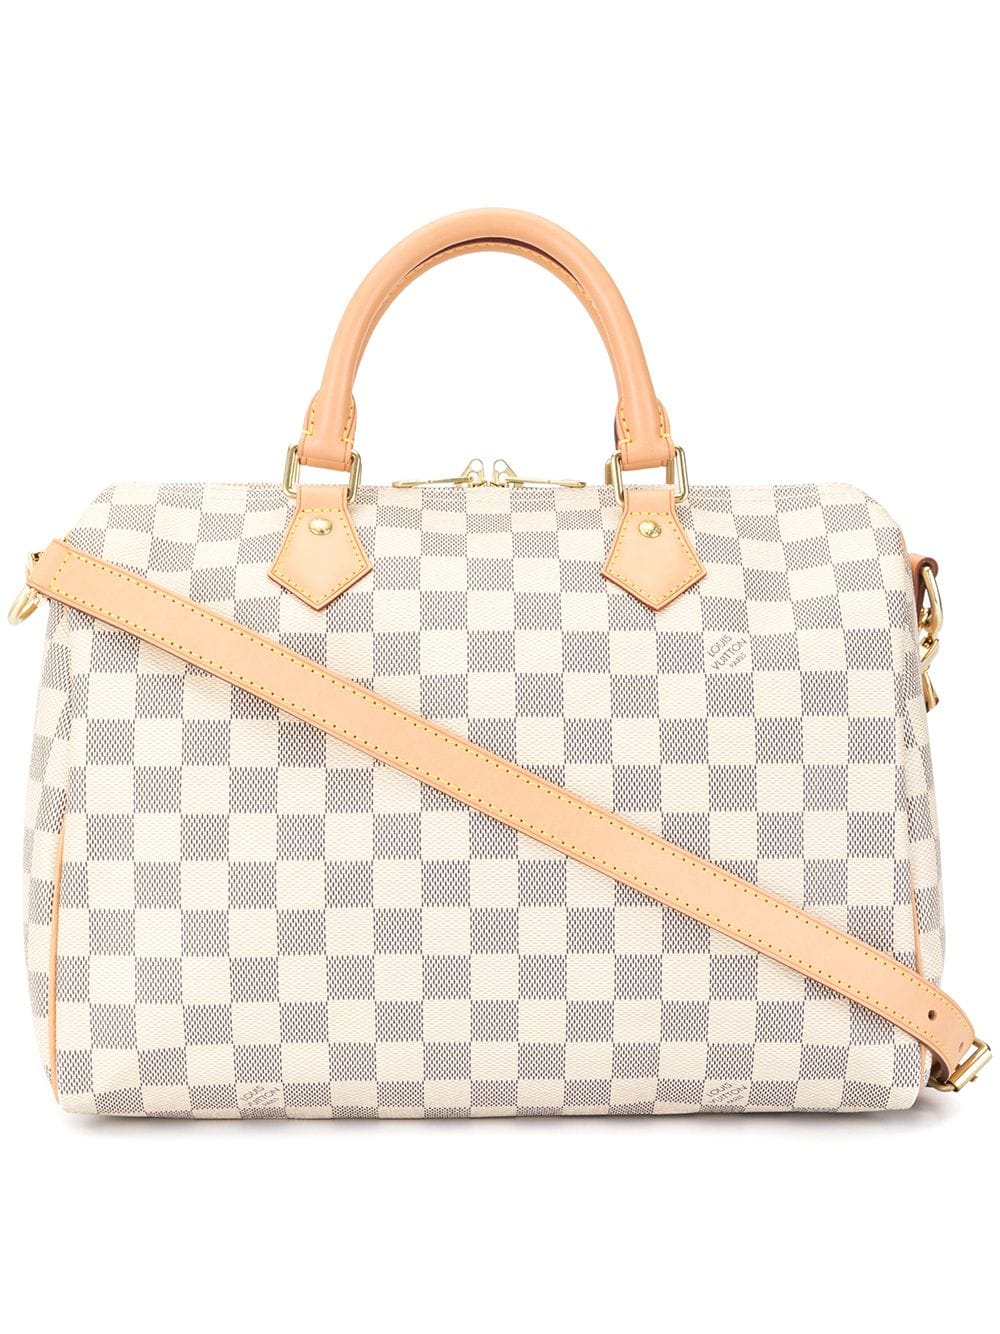 Louis Vuitton Pre Owned Speedy Bandouliere 30 Damier Tote Louis Vuitton Speedy Bandouliere Louis Vuitton Strap Louis Vuitton